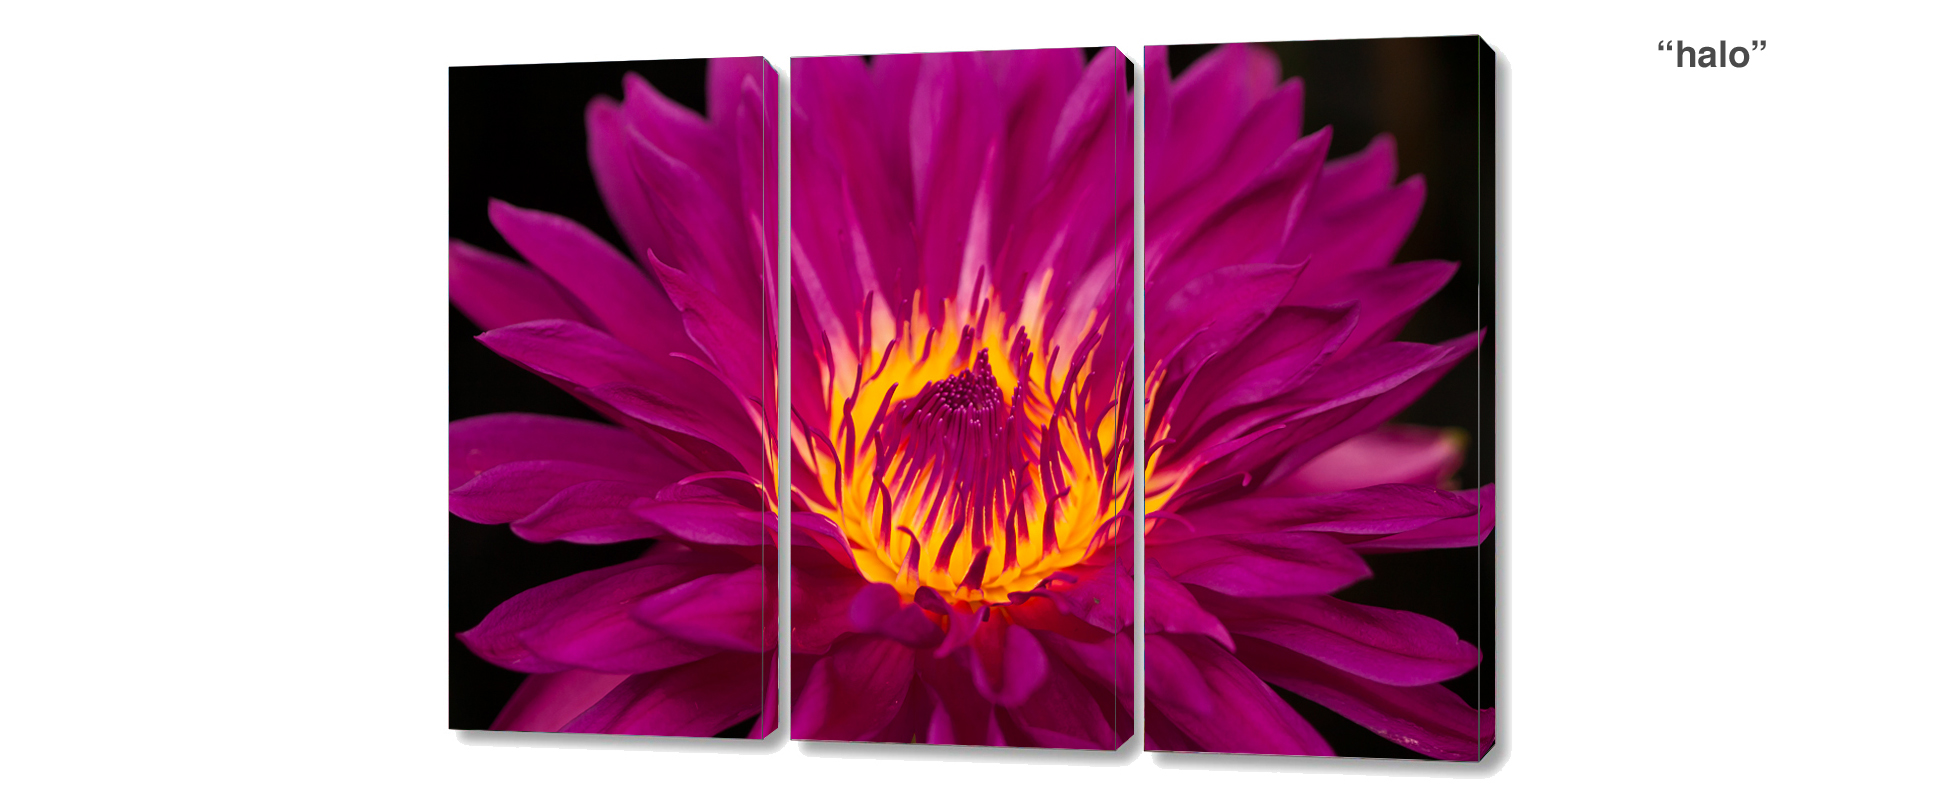 triptych water lily - 3 Piece limited edition giclee canvas floral wall decor